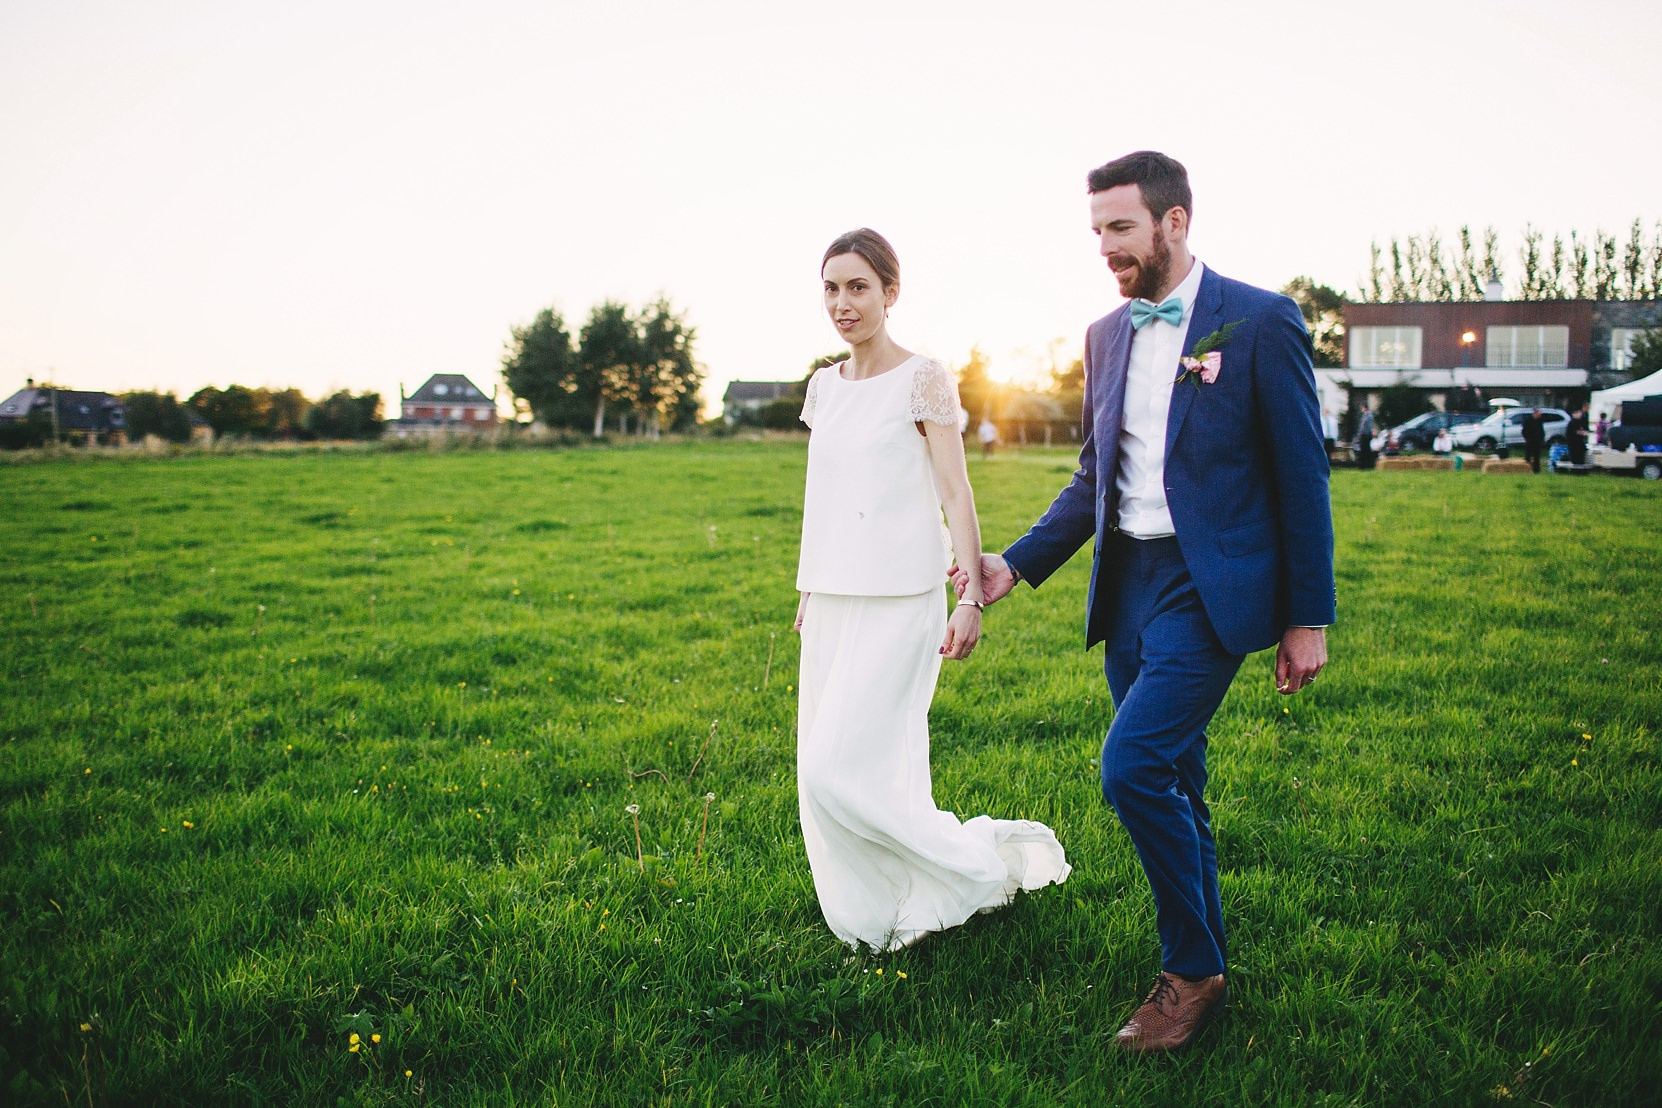 Bride and Groom walking through a field at sunset on a farm in Limerick